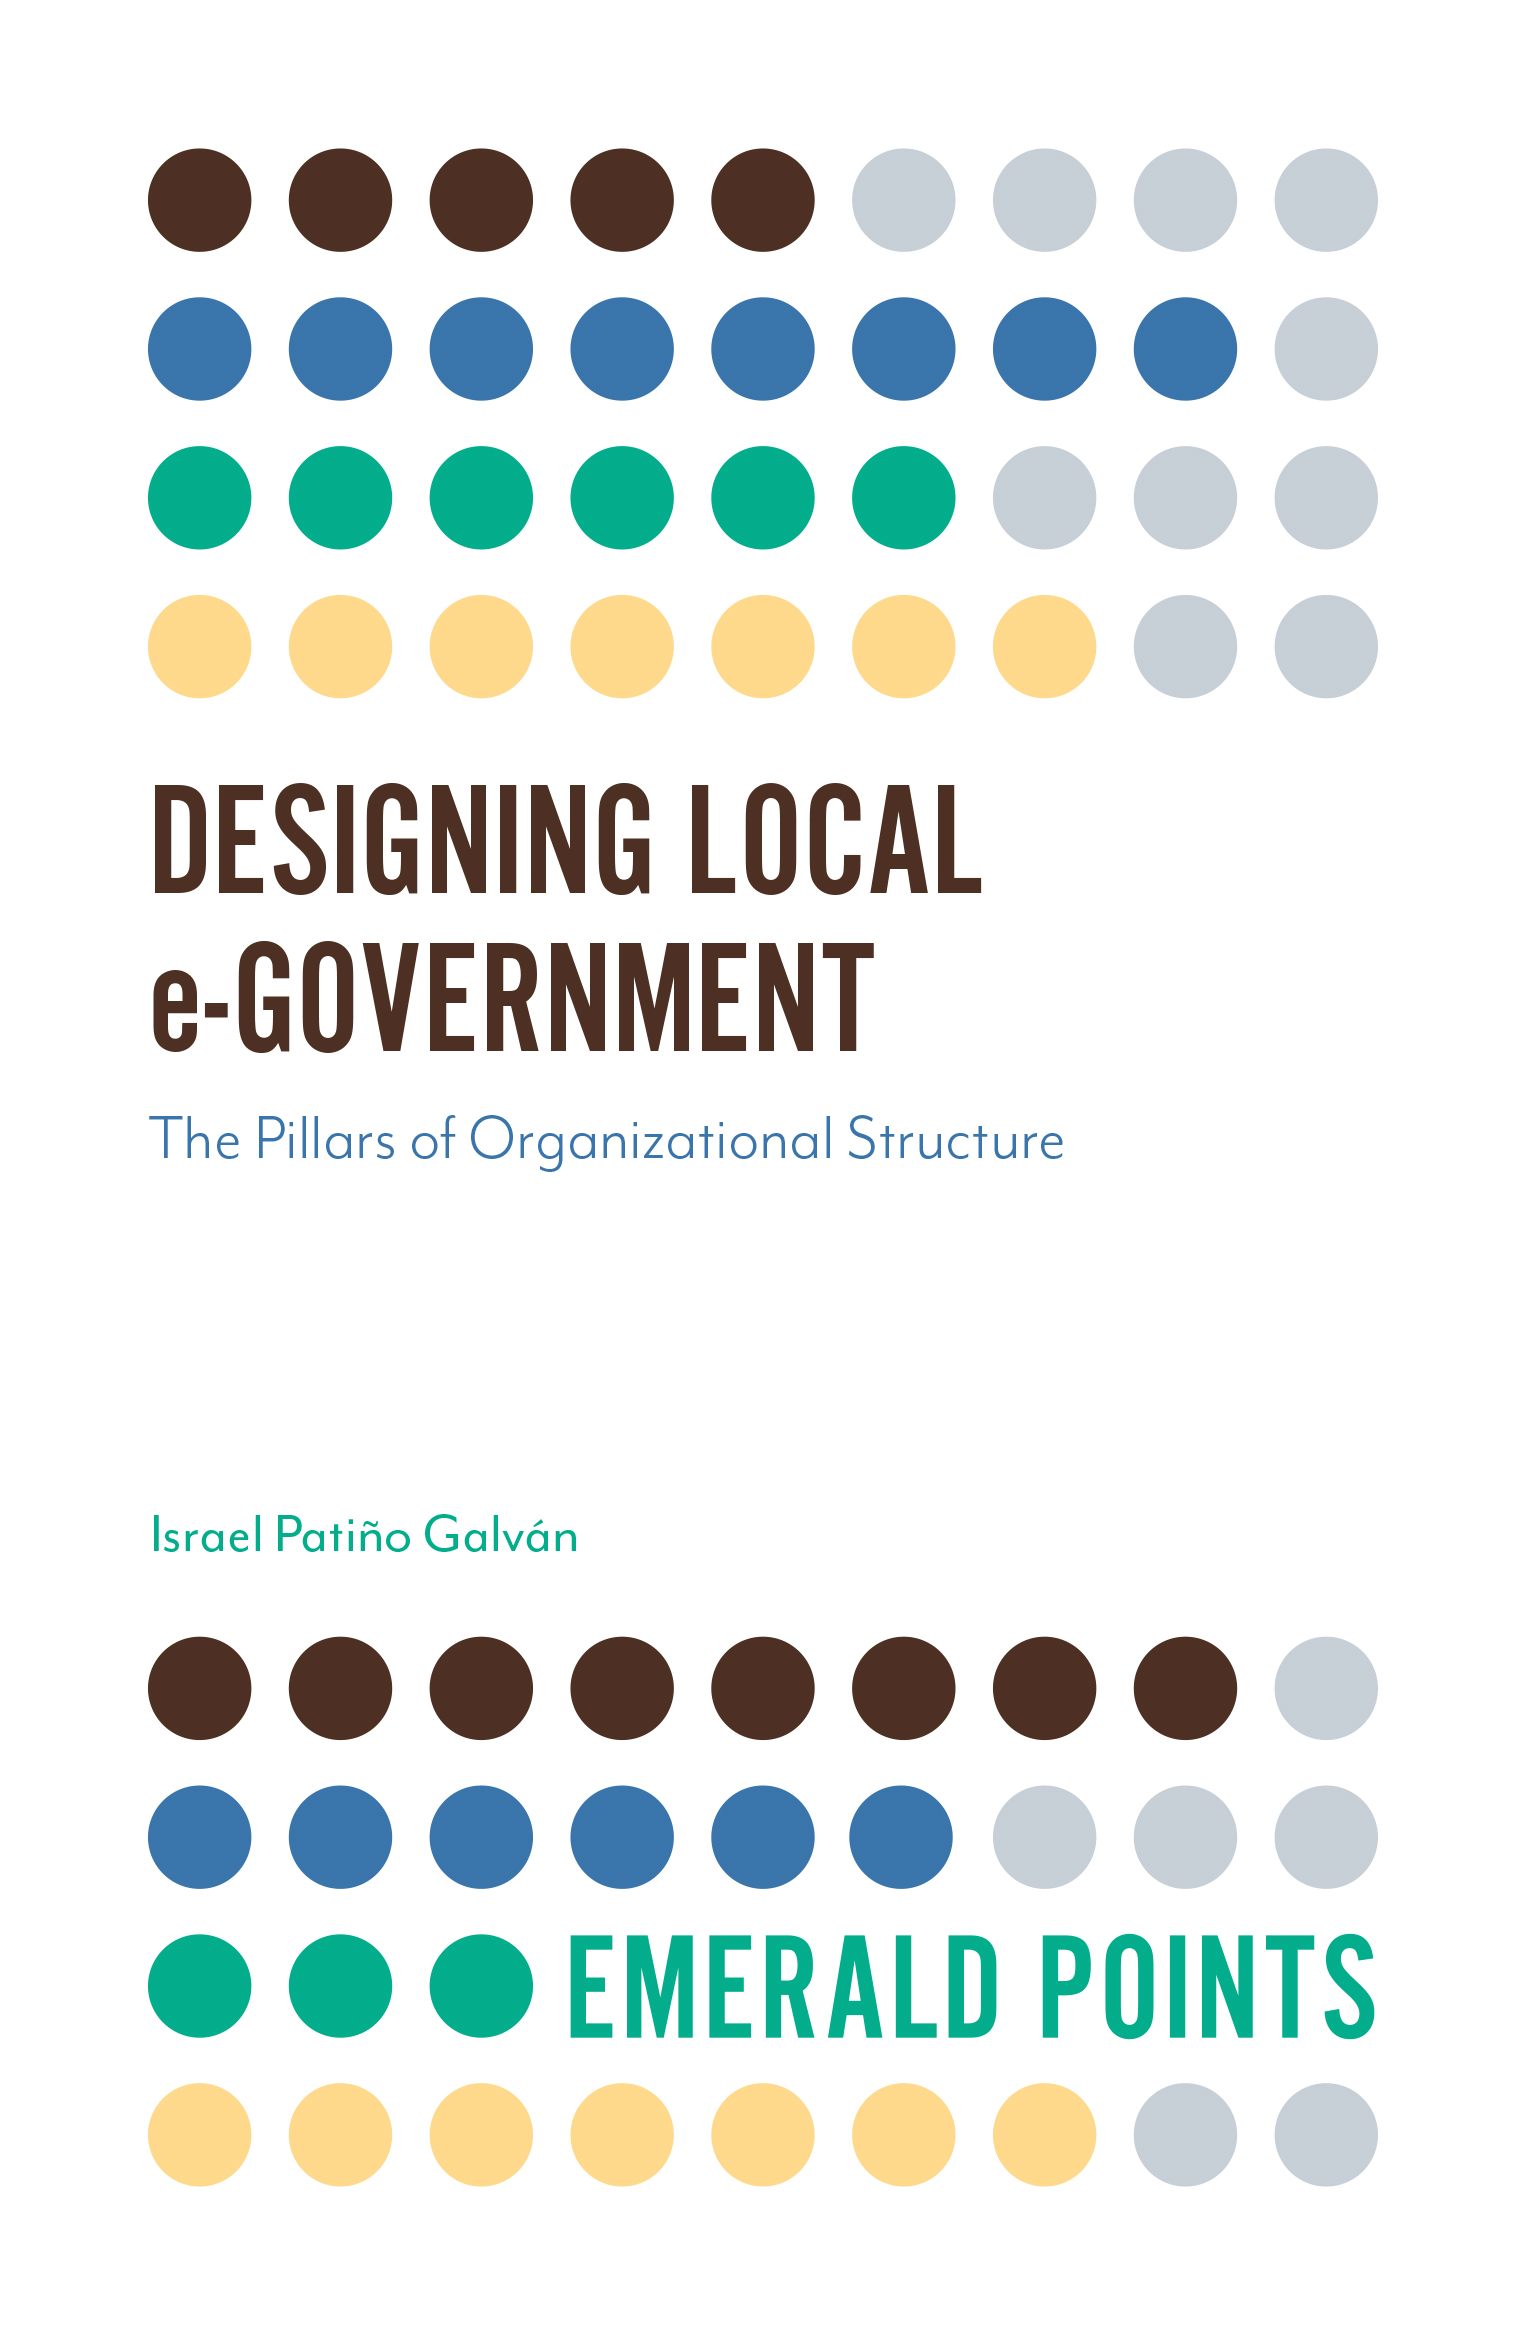 Book cover for Designing Local e-Government:  The Pillars of Organizational Structure a book by Israel Patiño Galvan